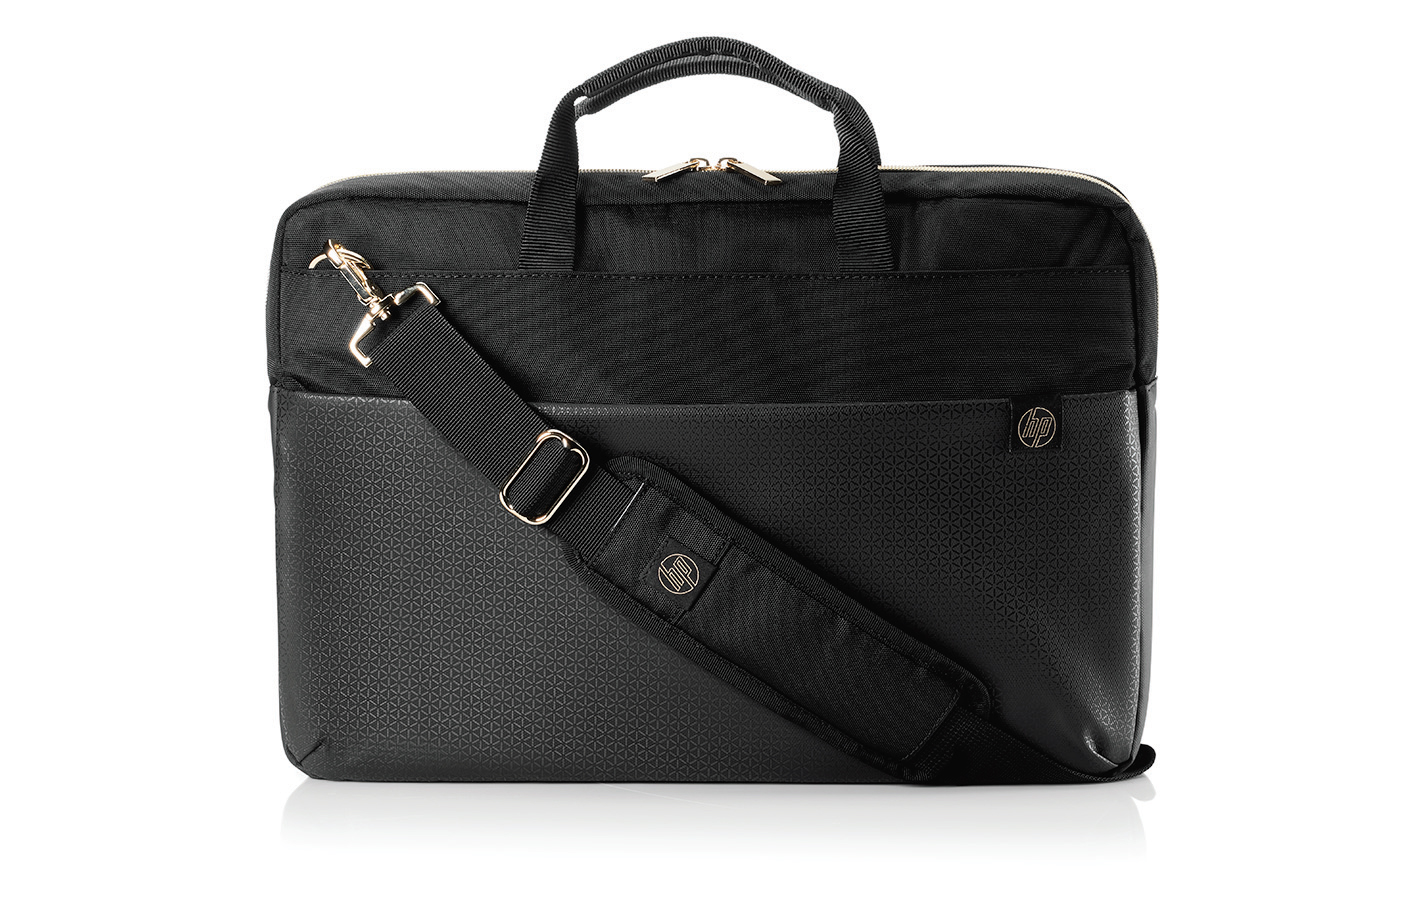 HP Pavilion Accent Briefcase 15 Black/Gold